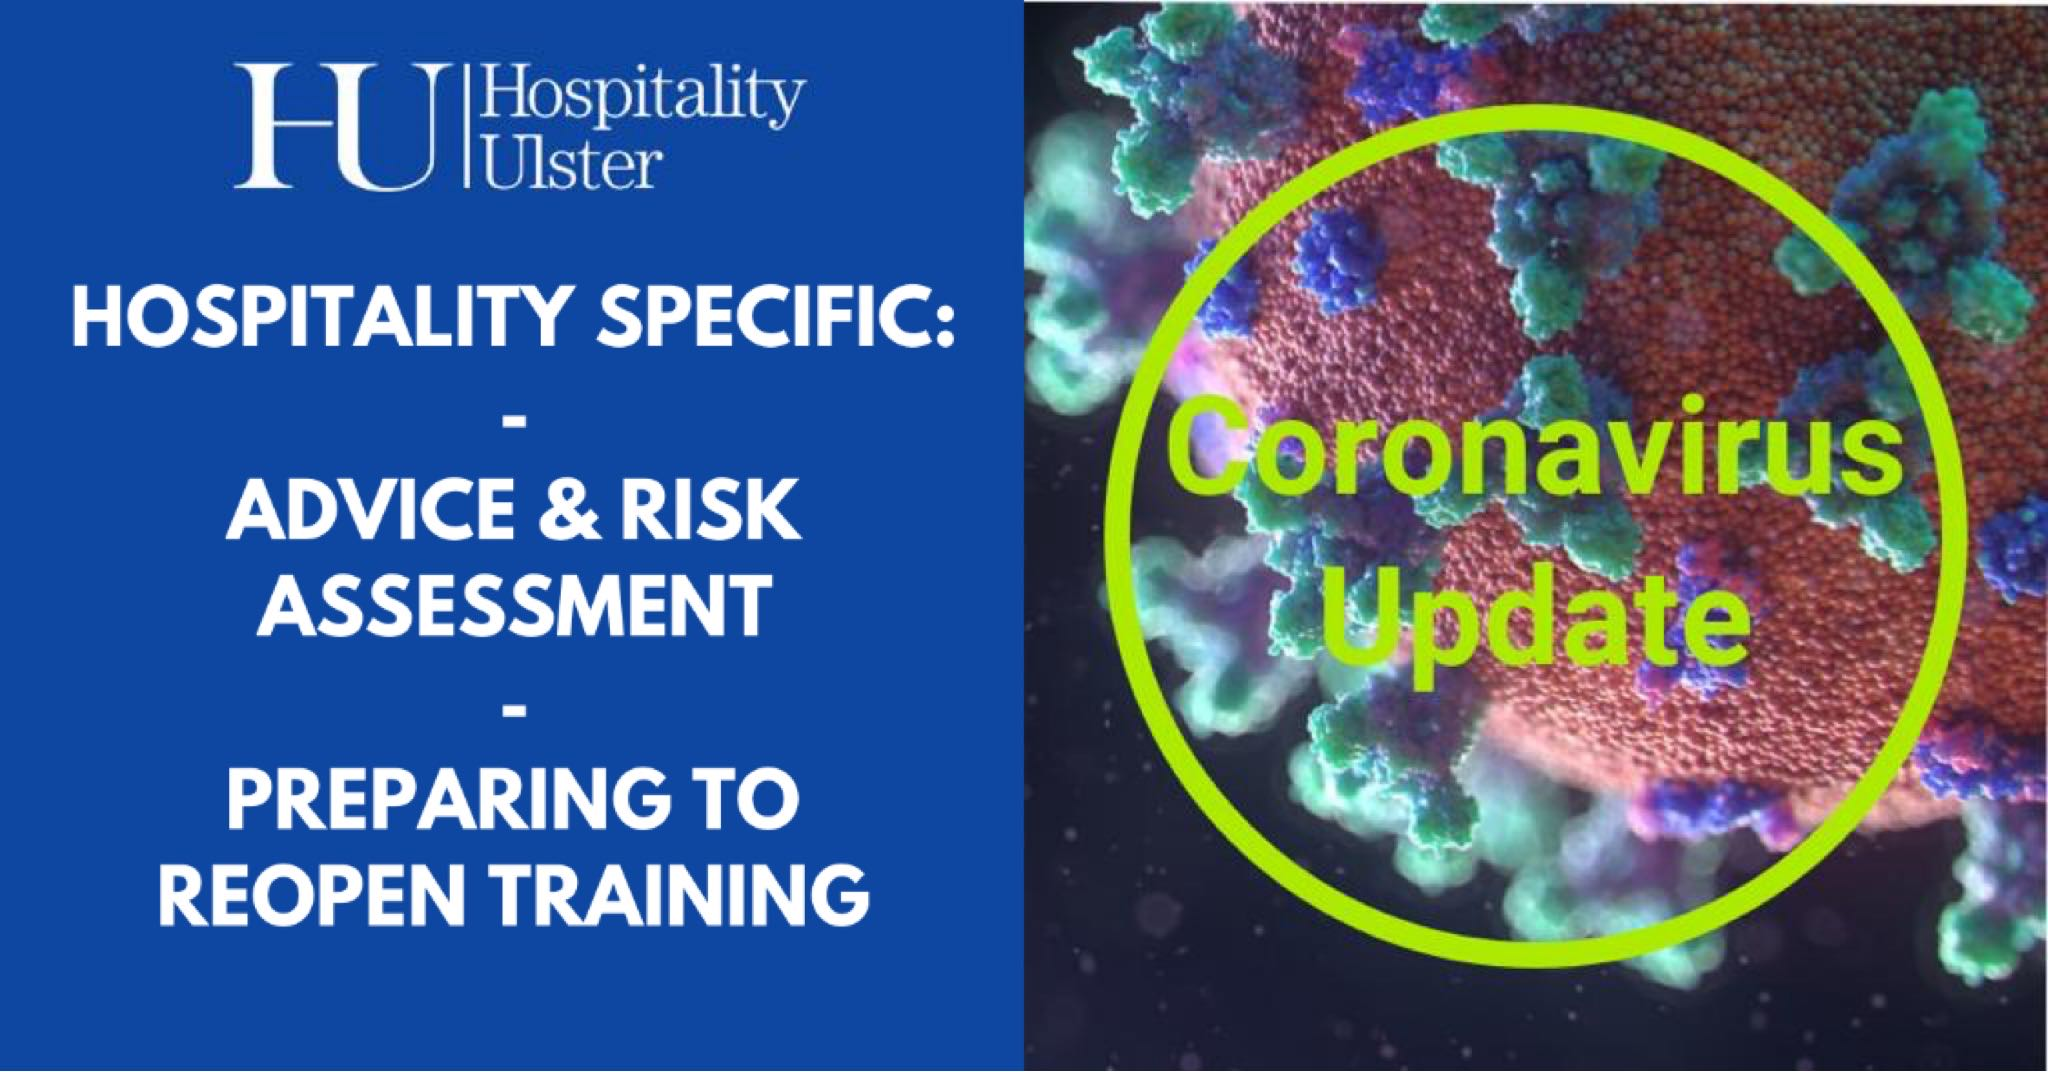 HOSPITALITY SPECIFIC COVID ADVICE AND RISK ASSESSMENT PLUS PREPARING TO REOPEN TRAINING